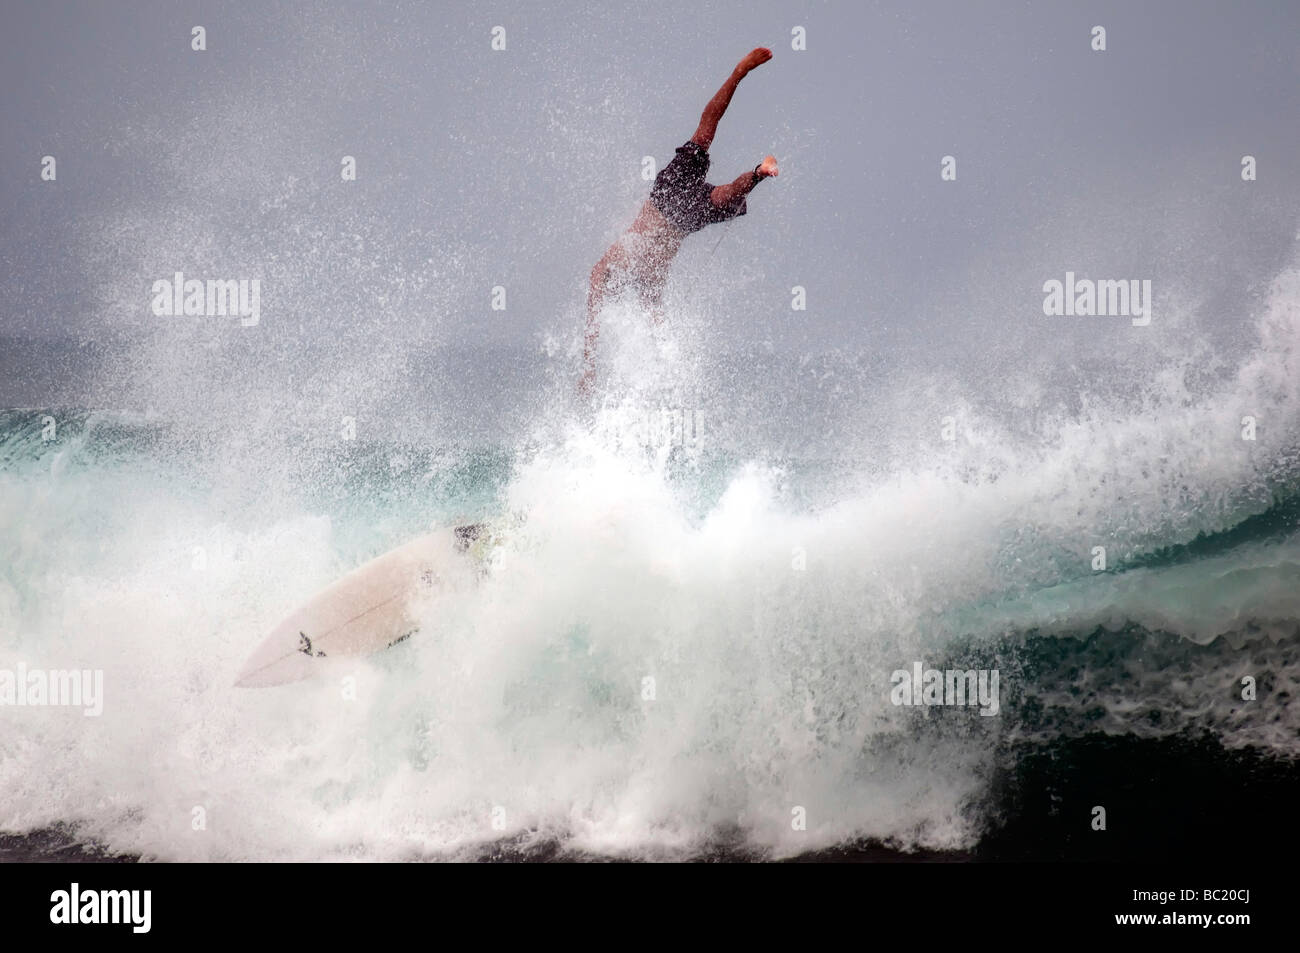 Surfer surfs wipe out, flys off of board ocean spray as wave breaks dramatic, arugam bay east coast Sri Lanka - Stock Image